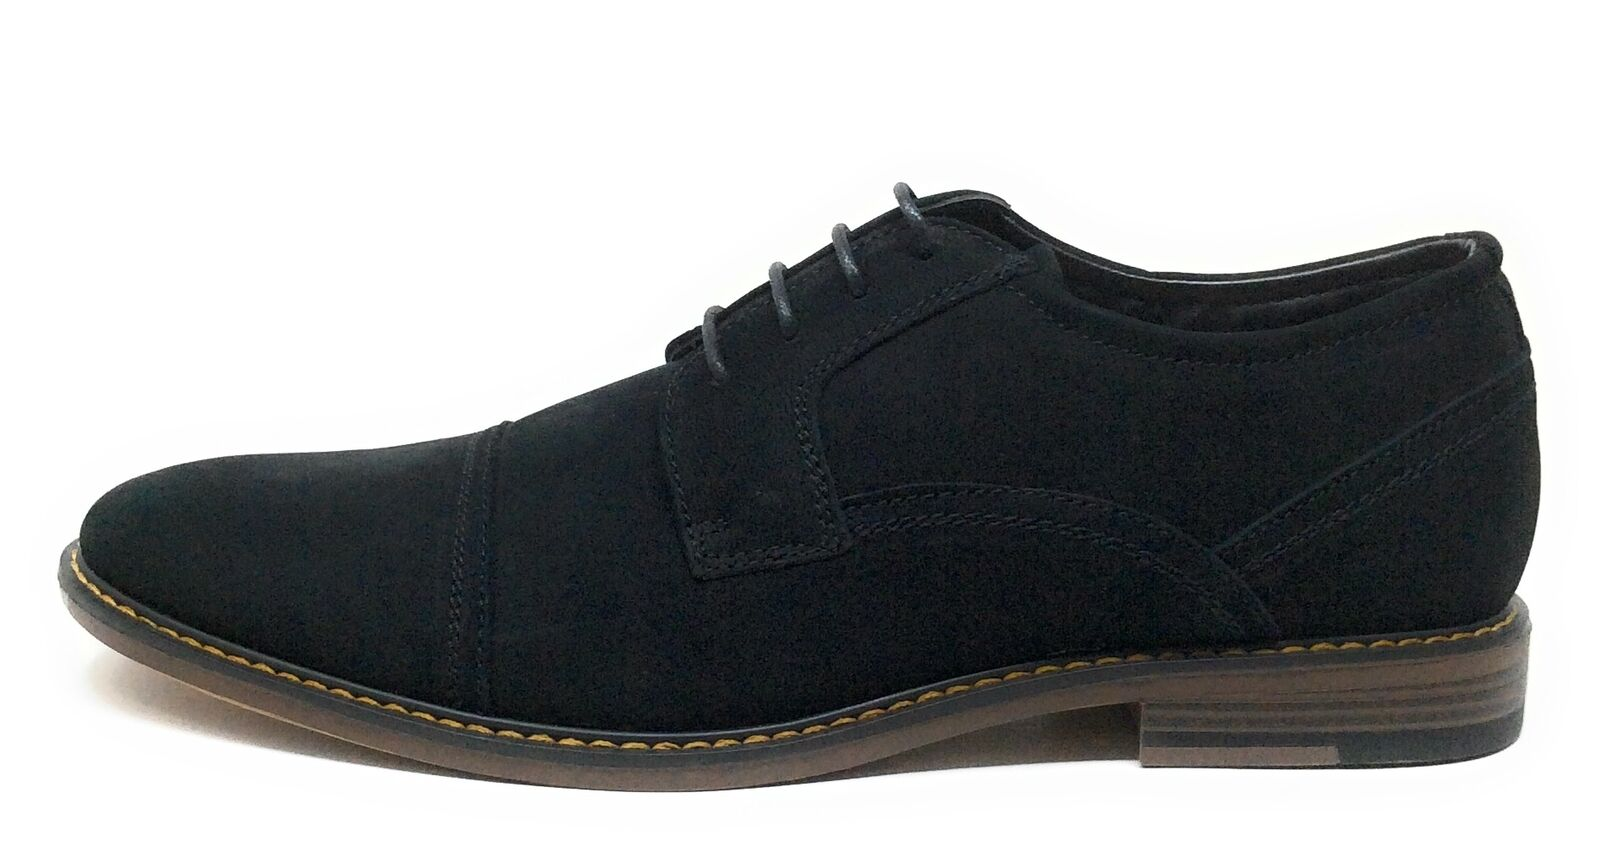 J75 By Jump Mens Paulson Lace Oxford Dress Shoes Black Leather Size 10.5 M US